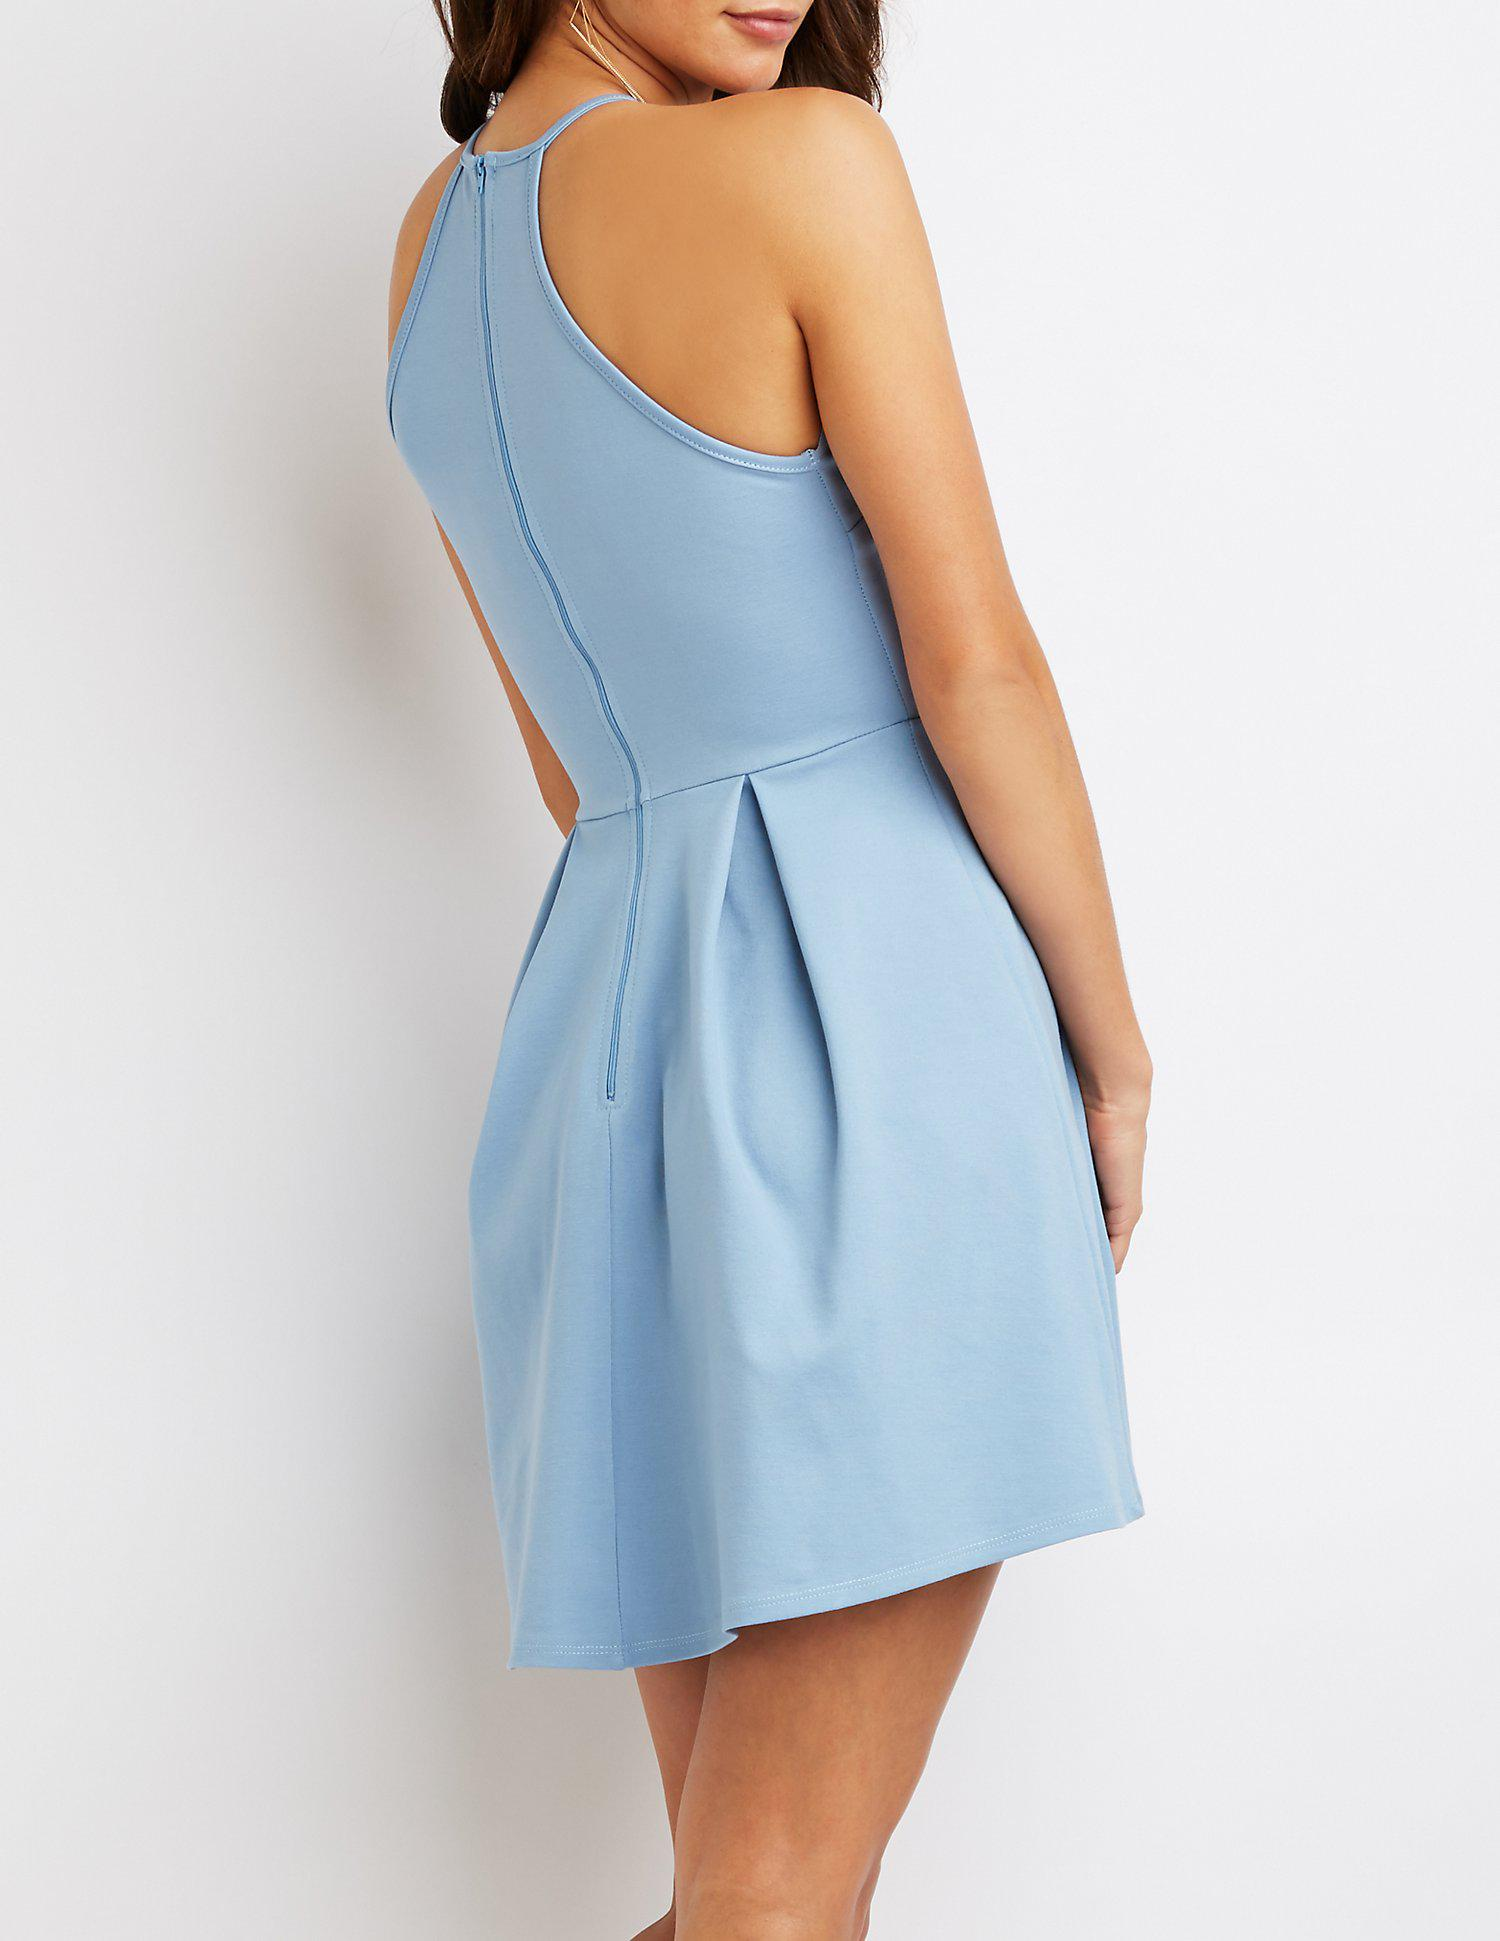 Lyst - Charlotte Russe Scalloped Bib Neck Skater Dress in Blue ...